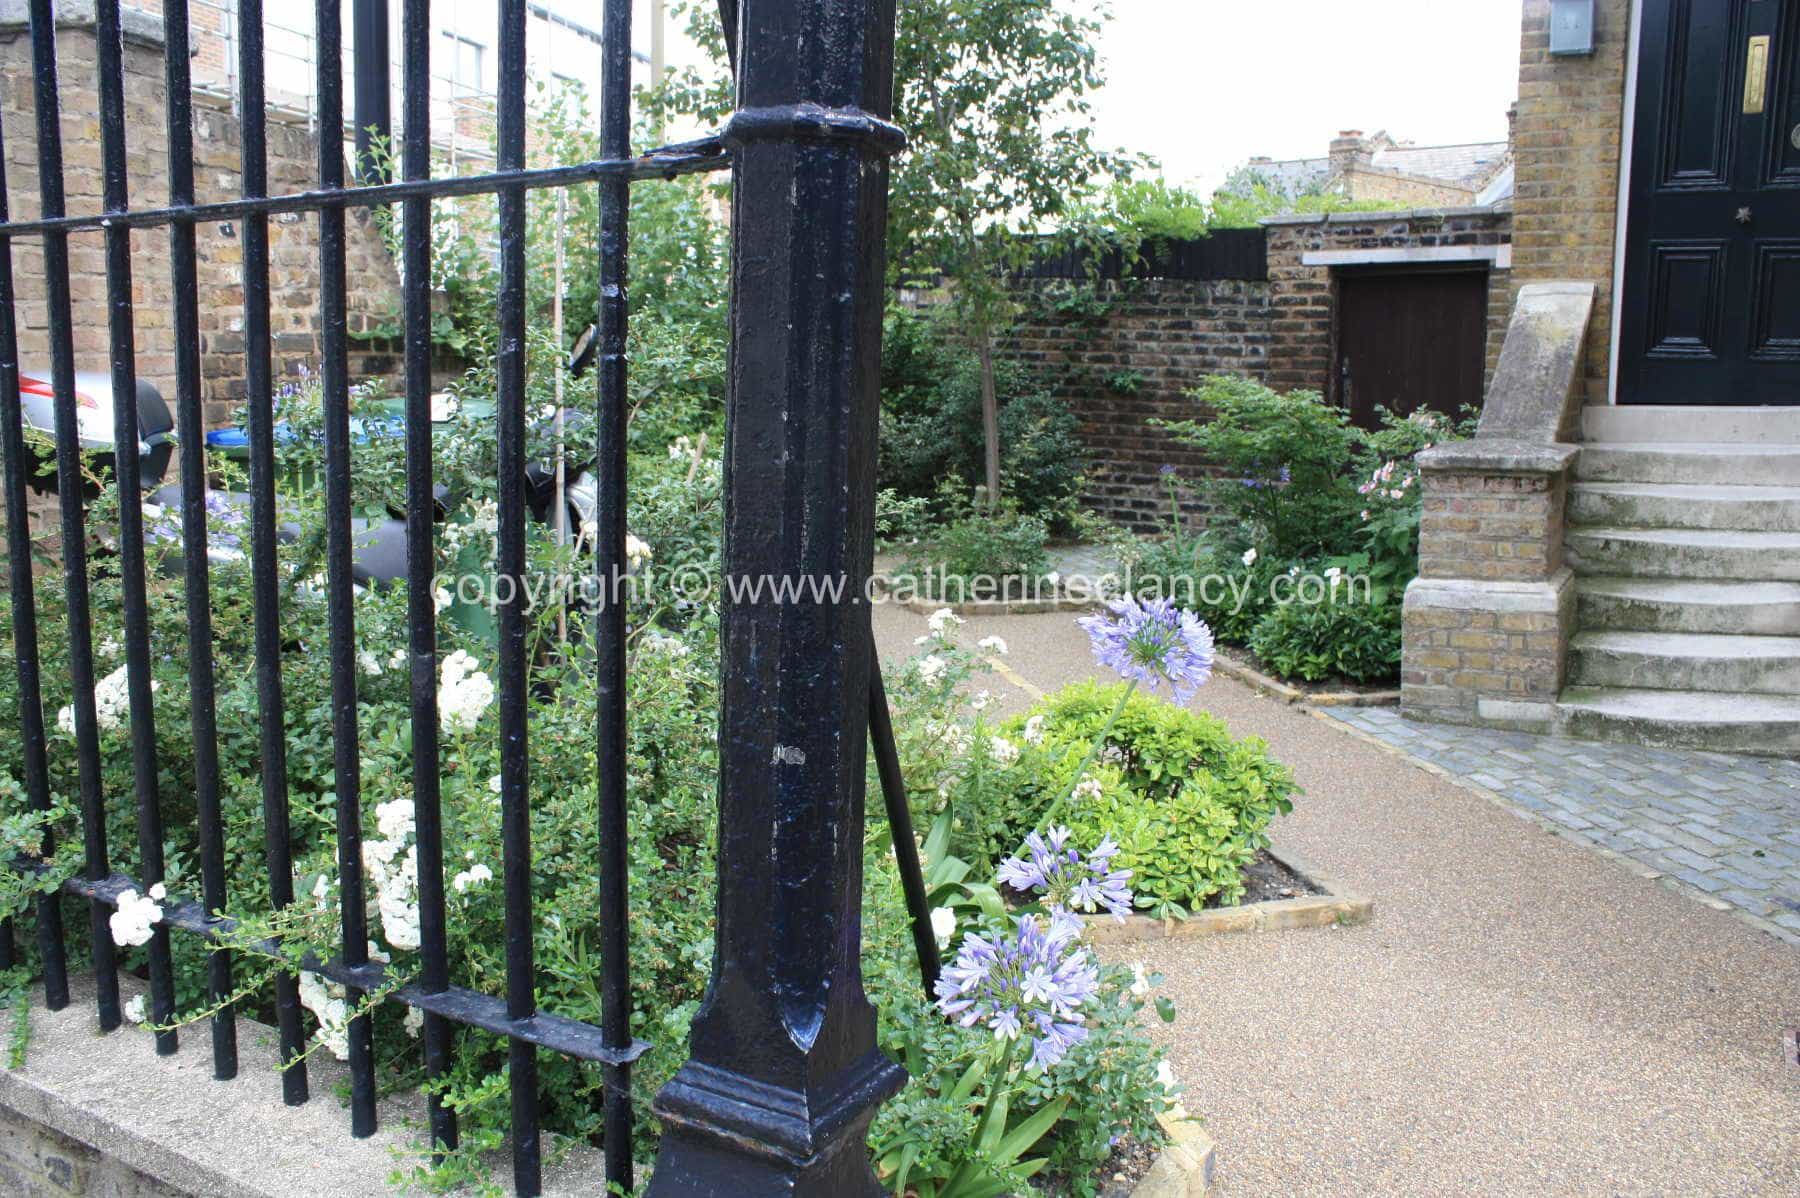 london-courtyard-front-garden-1